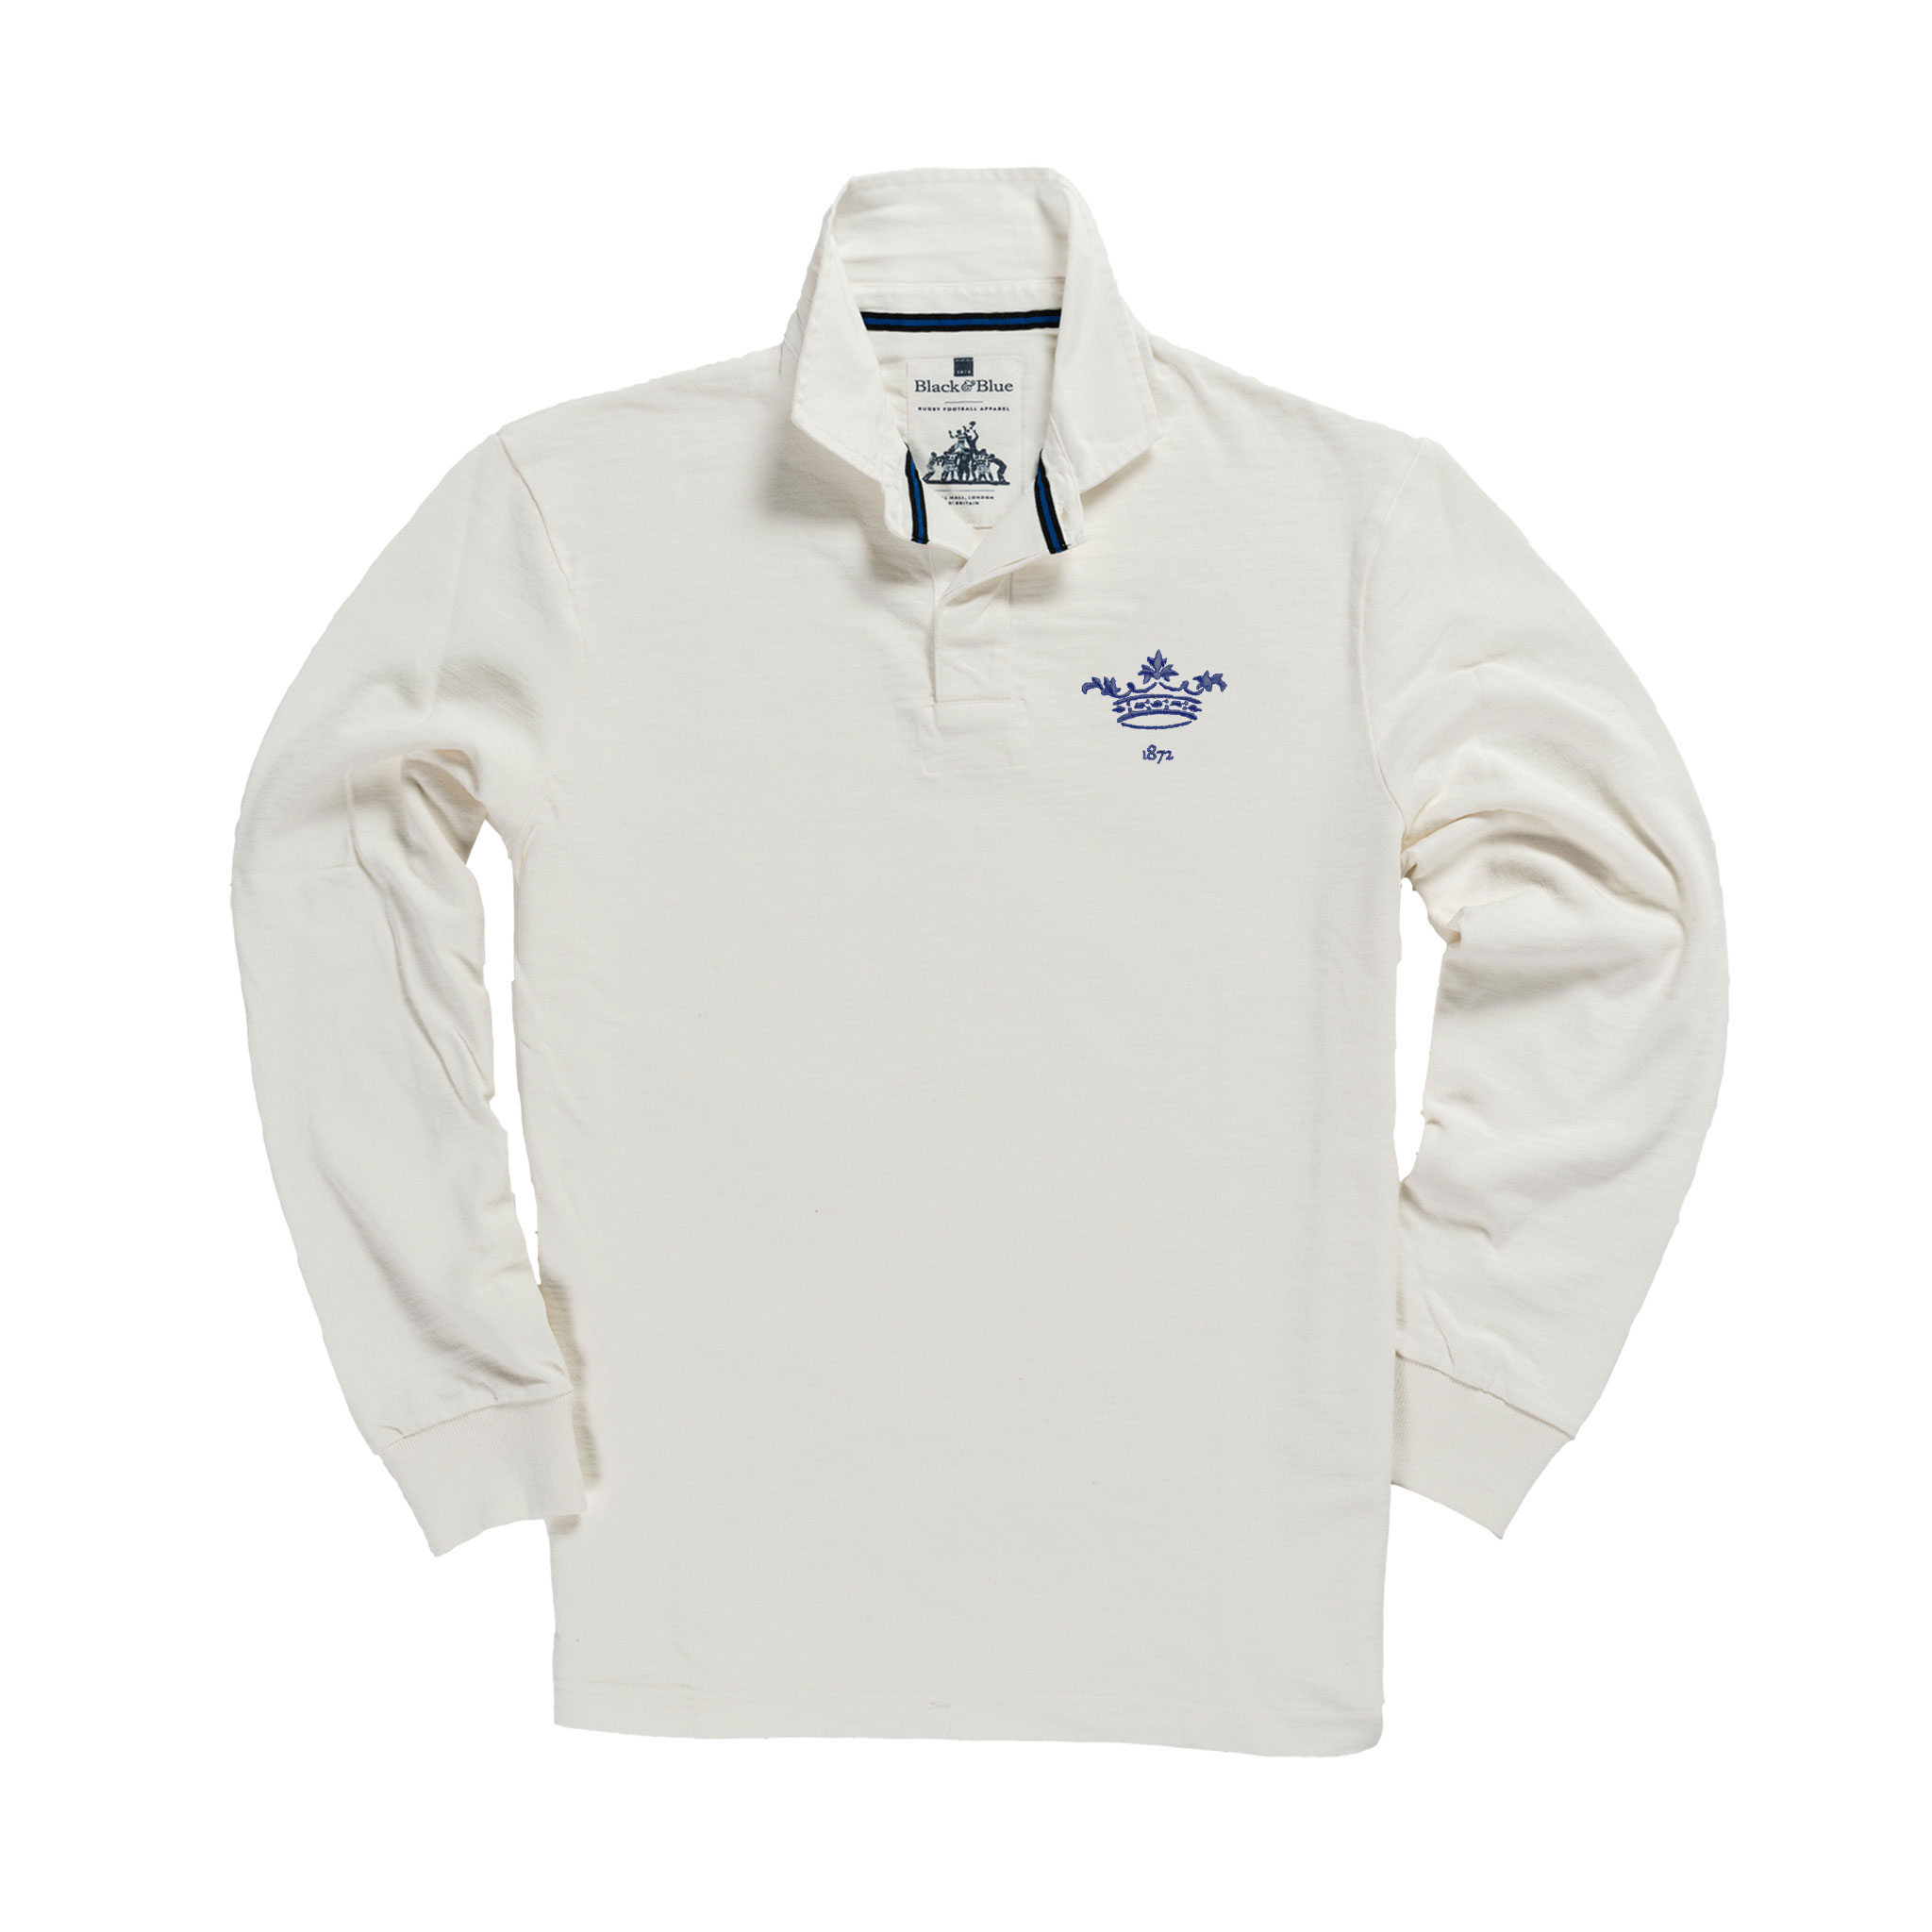 Oxford 1872 Rugby Shirt White_Front